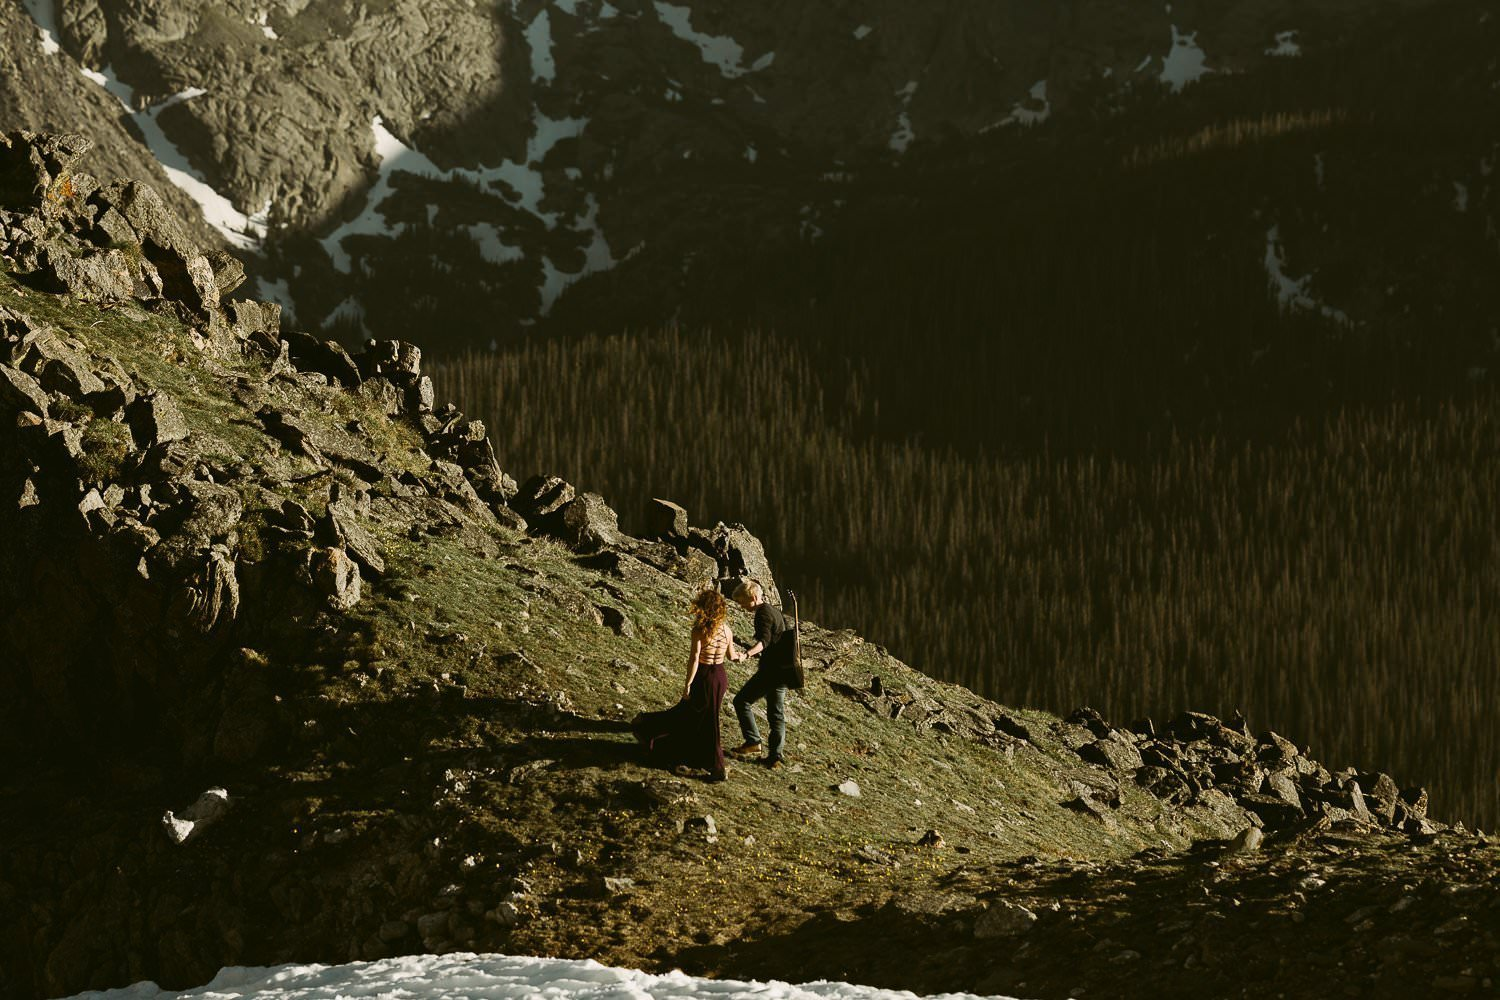 ROCKY MOUNTAIN NATIONAL PARK ADVENTURE ENGAGEMENT|TRAIL RIDGE ROAD HIKING ADVENTURE COLORADO MOUNTAIN WEDDING PHOTOGRAPHER|COLORADO ELOPEMENT PHOTOGRAPHER|OLIVER+ALYSSA